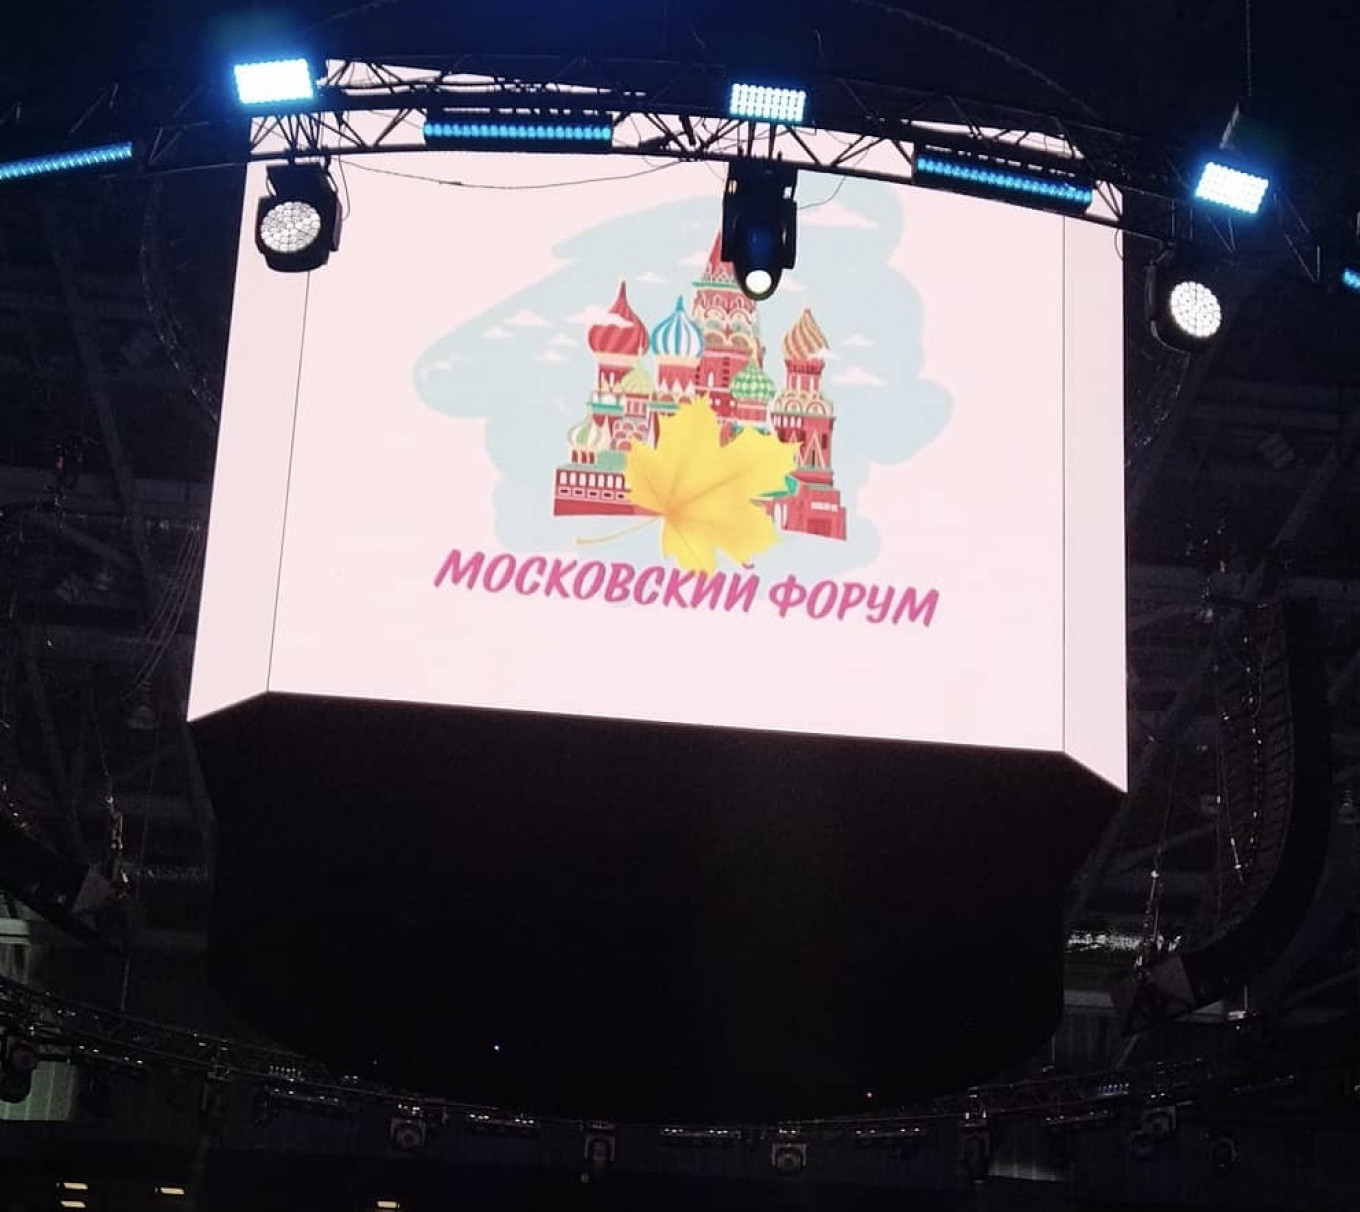 """The """"Moscow Forum"""" logo — featuring a stock image — displayed on big screens at the VTB Arena. Instagram / Mesetkin_official"""